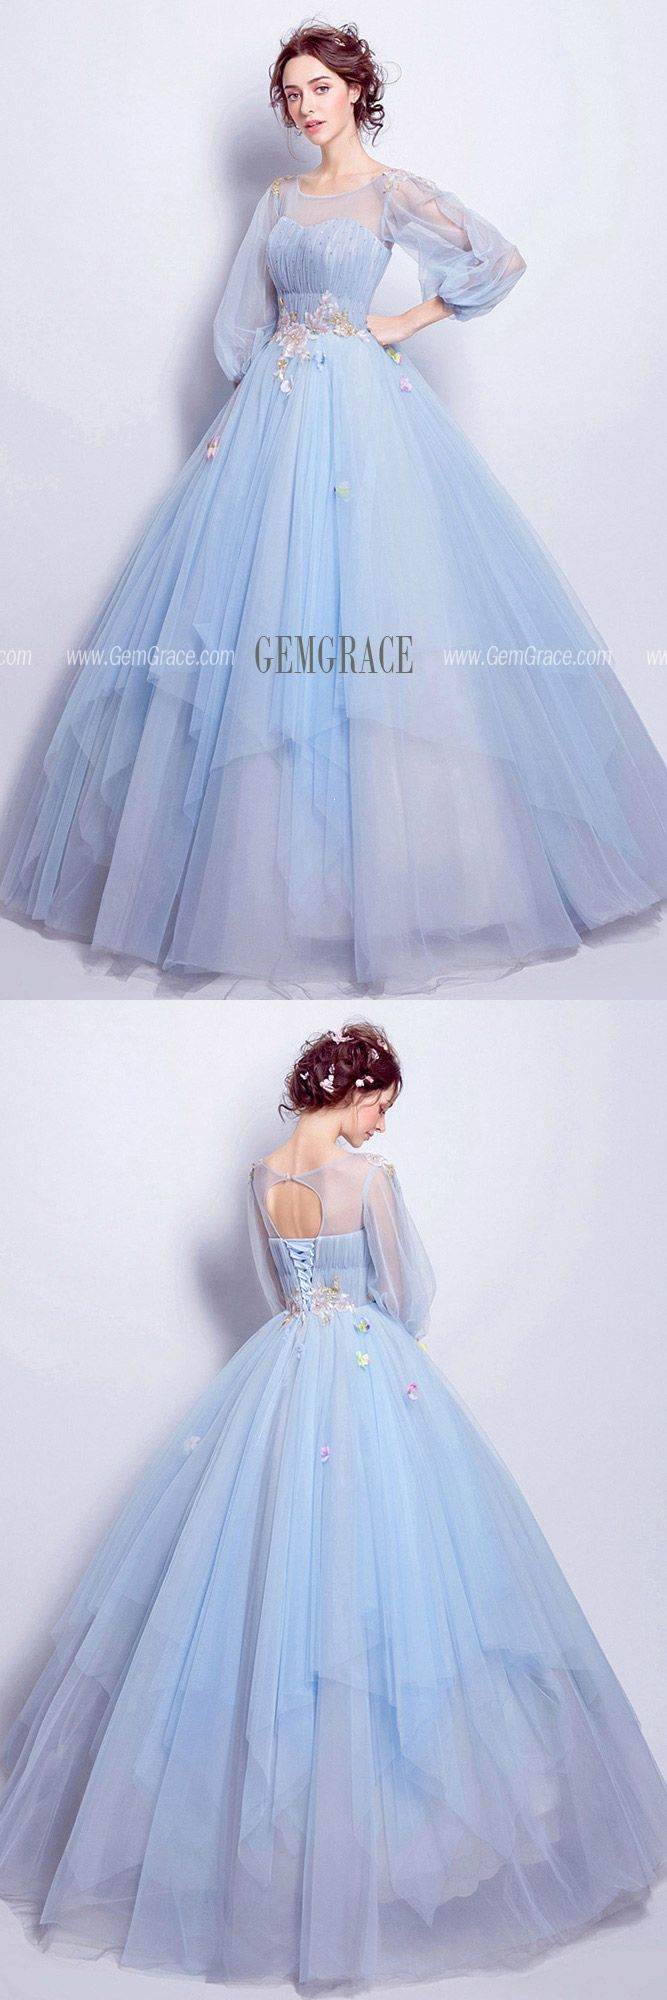 Cinderella Blue Ball Gown Prom Dress With Puff Sleeves For Quinceanera Ref#T6952…